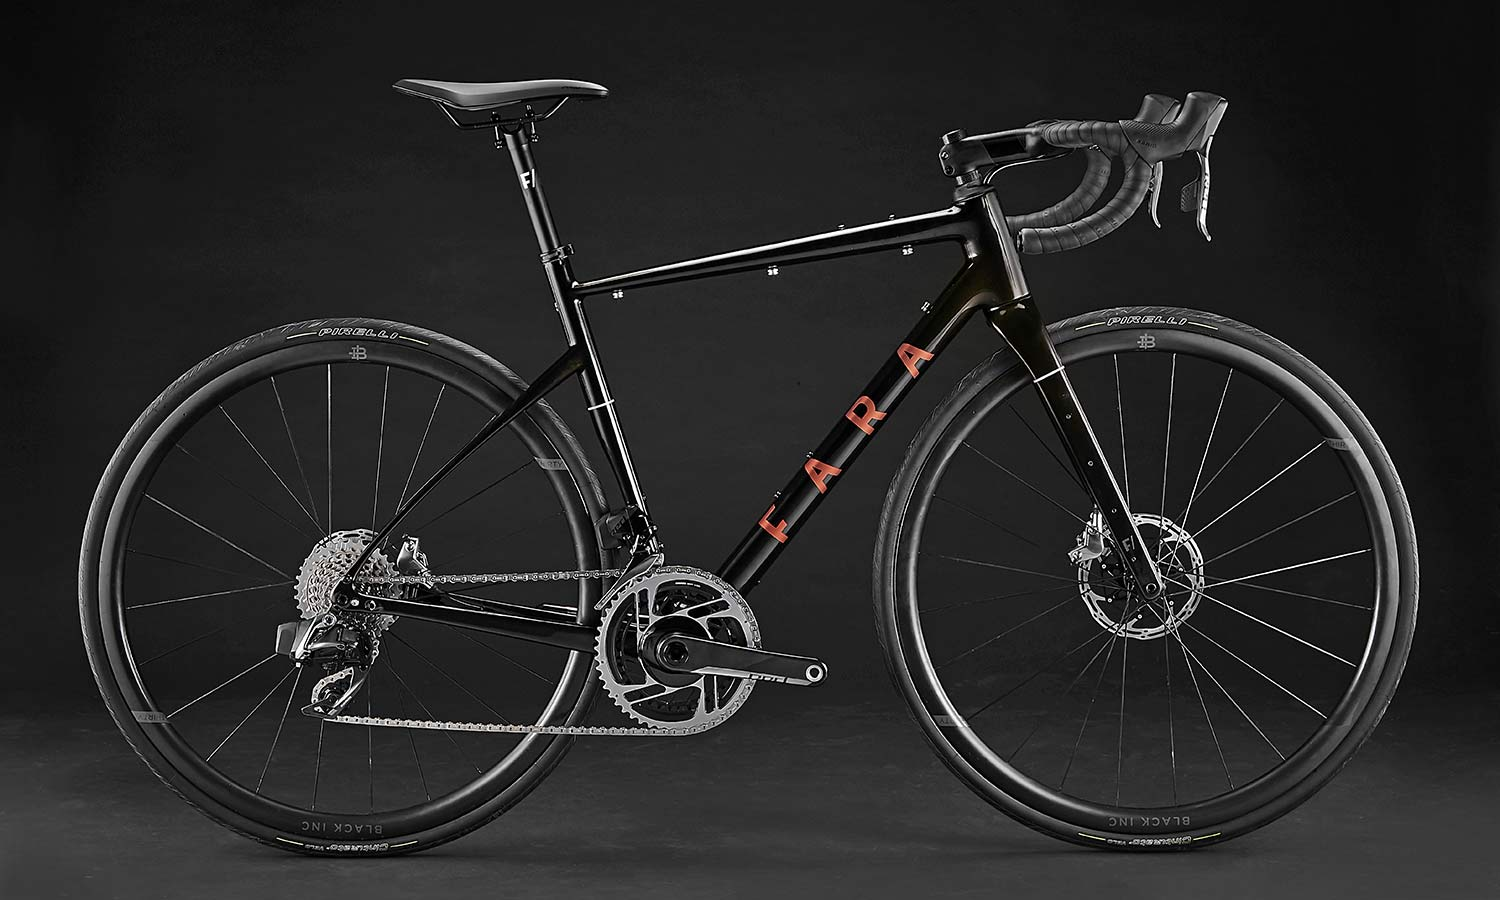 2021 Fara F-AR all-road bike ltd Signature Edition, carbon endurance gravel road bike with integrated bikepacking bags, no bags